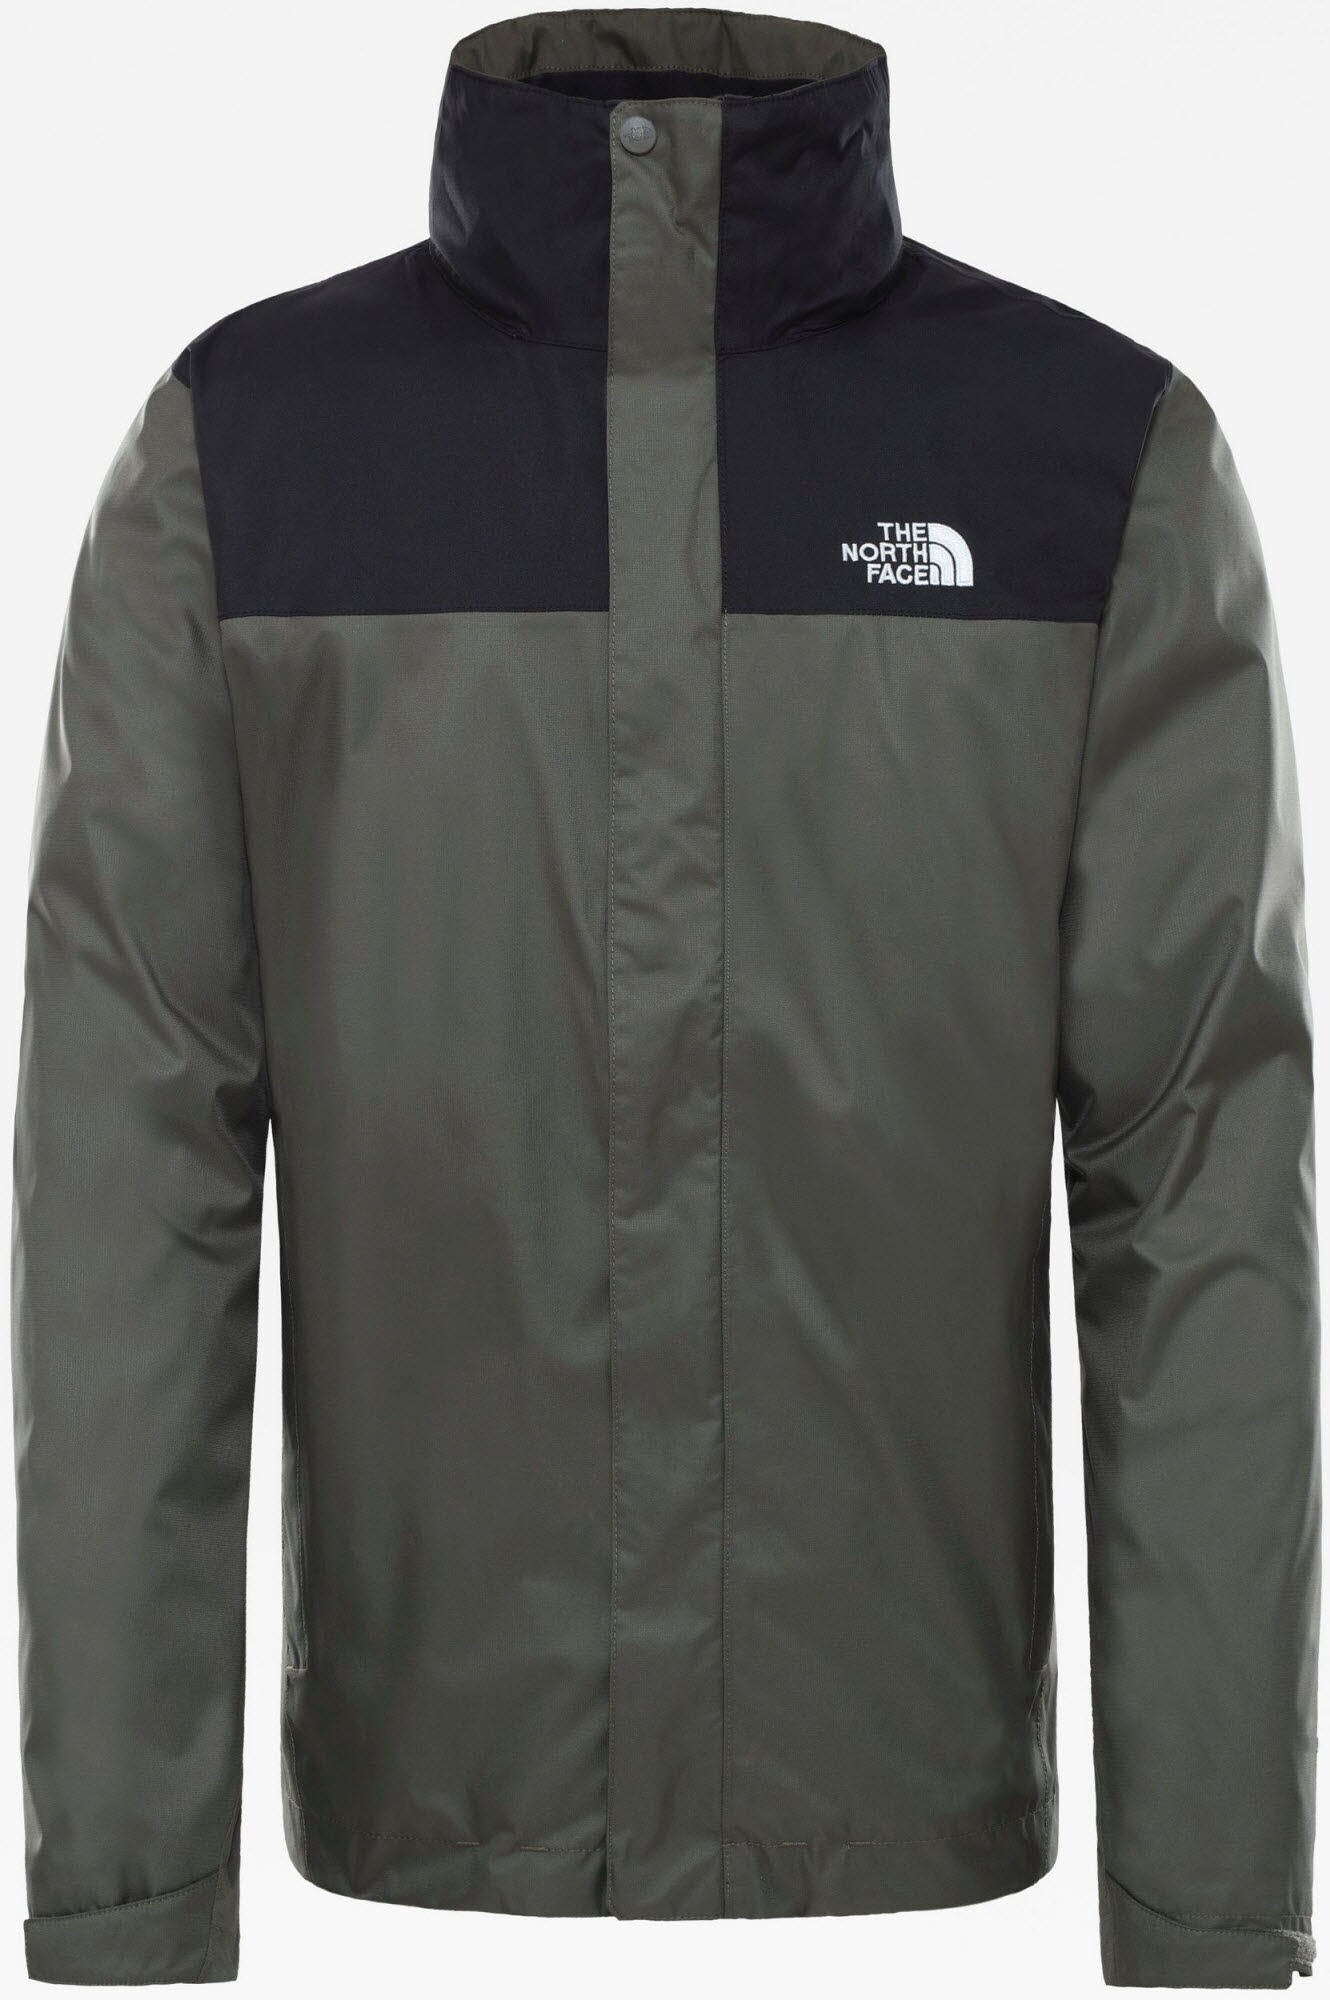 THE NORTH FACE Outdoorová bunda EVOLVE II TRICLIMATE šedá The North Face